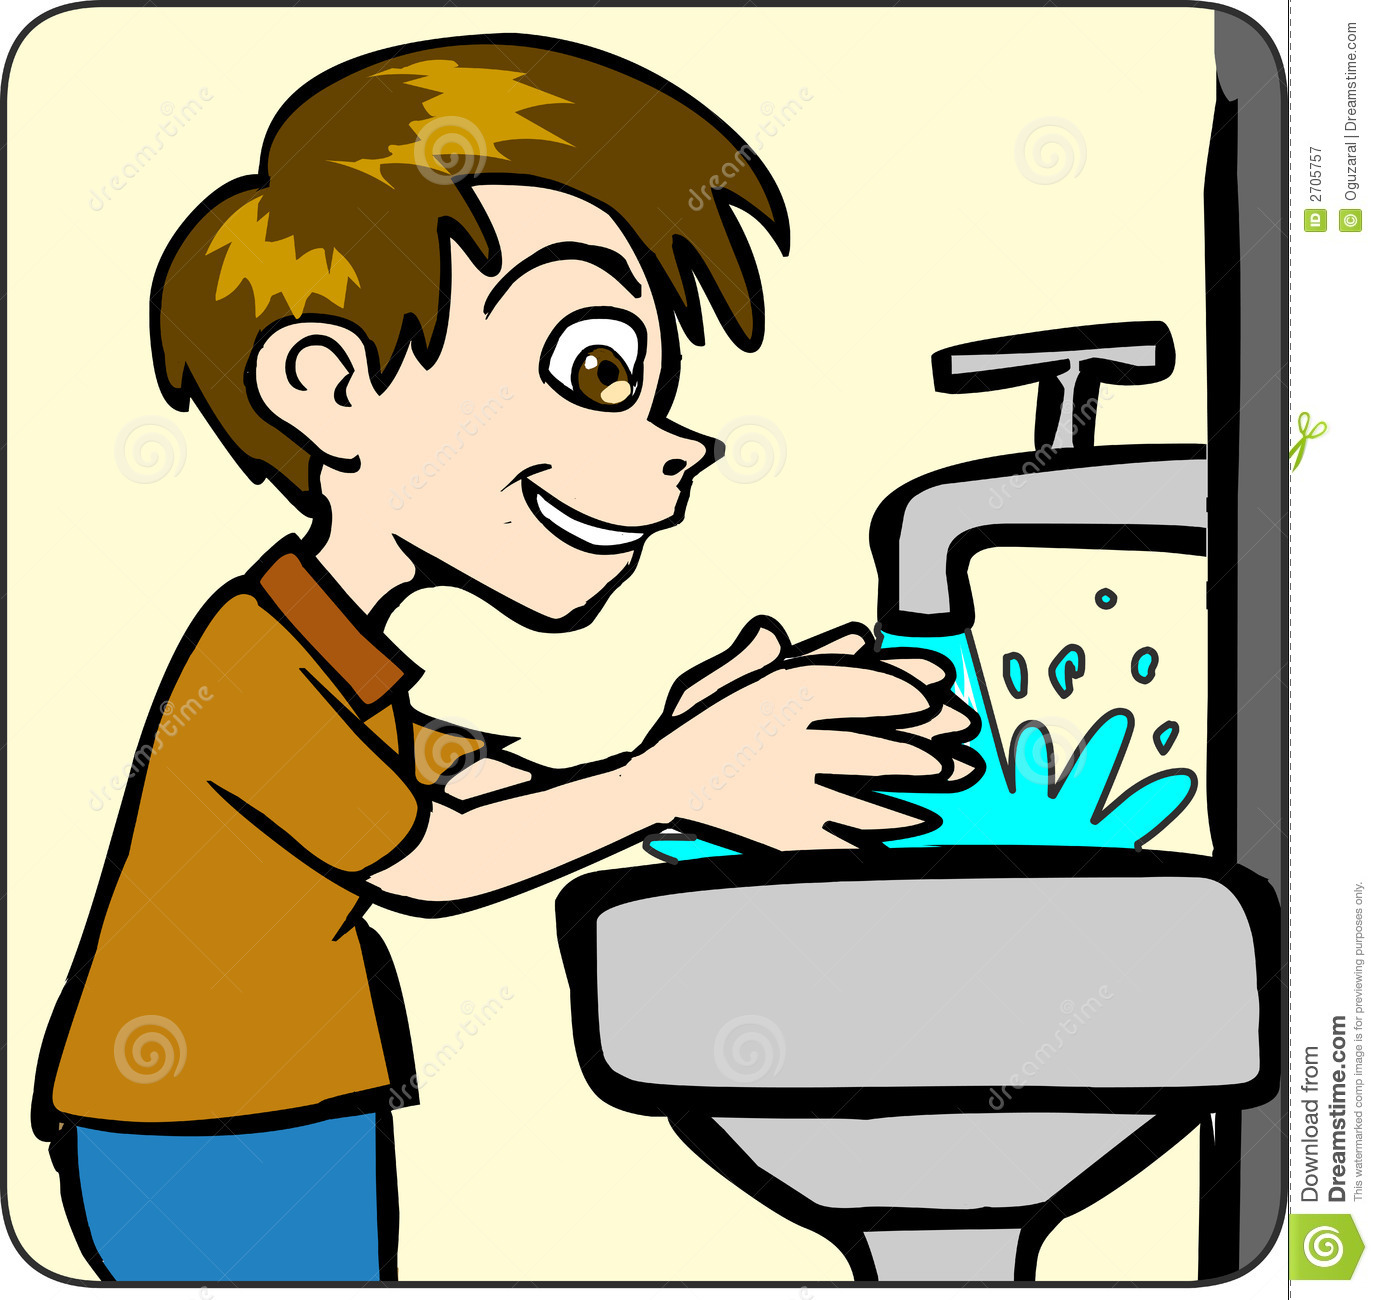 1378x1300 Collection Of Hand Wash Clipart Images High Quality, Free